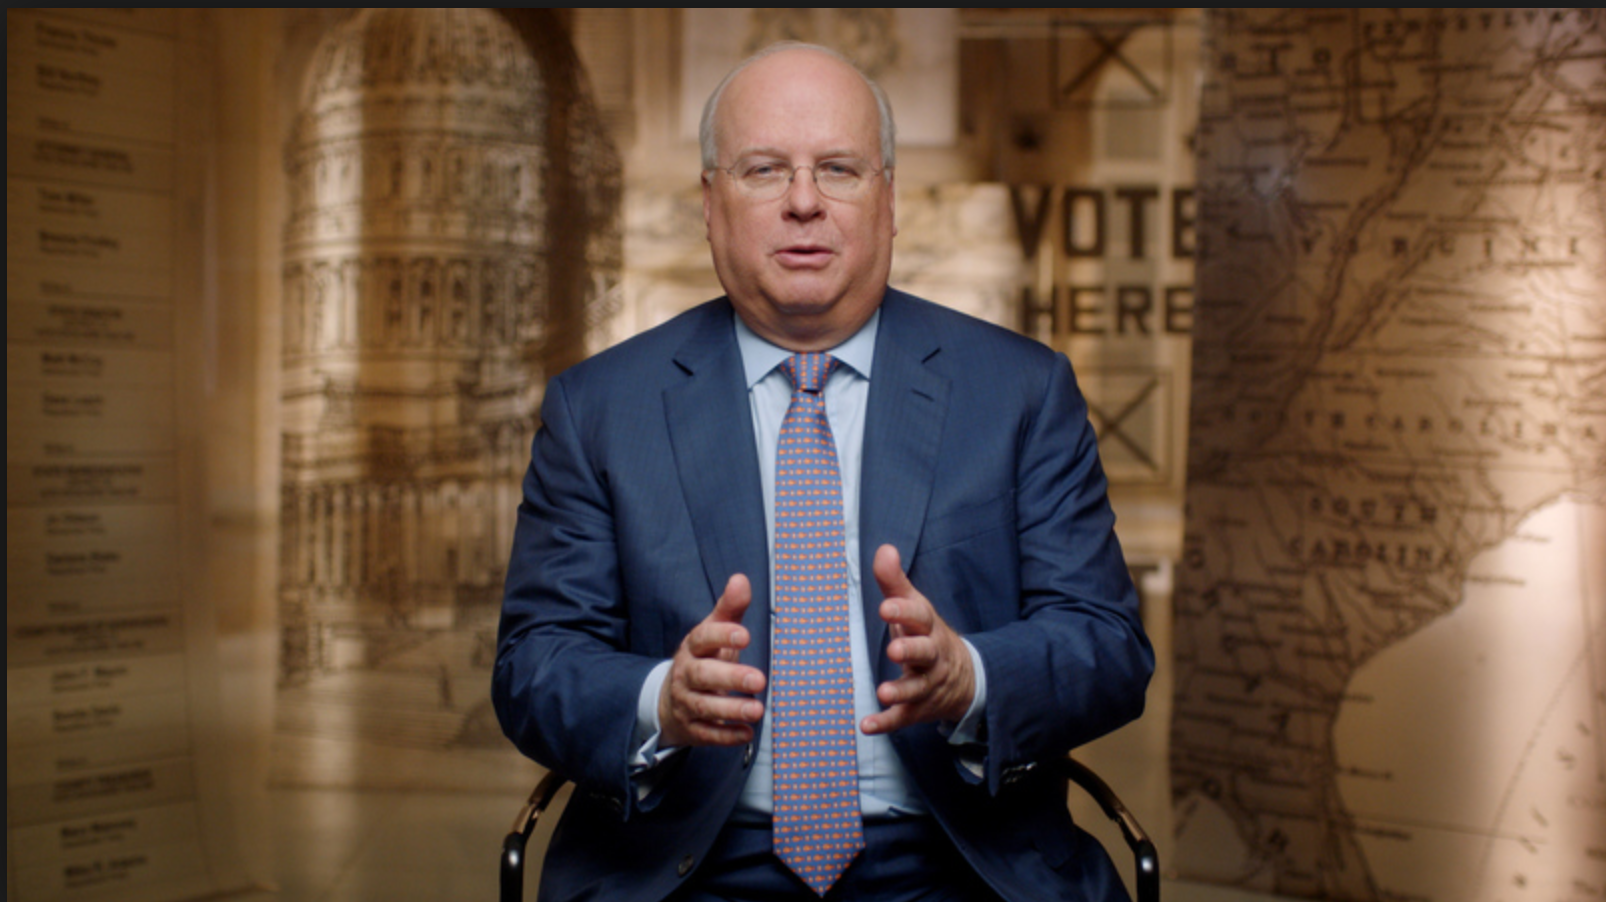 Karl Rove Teaches Campaign Strategy review